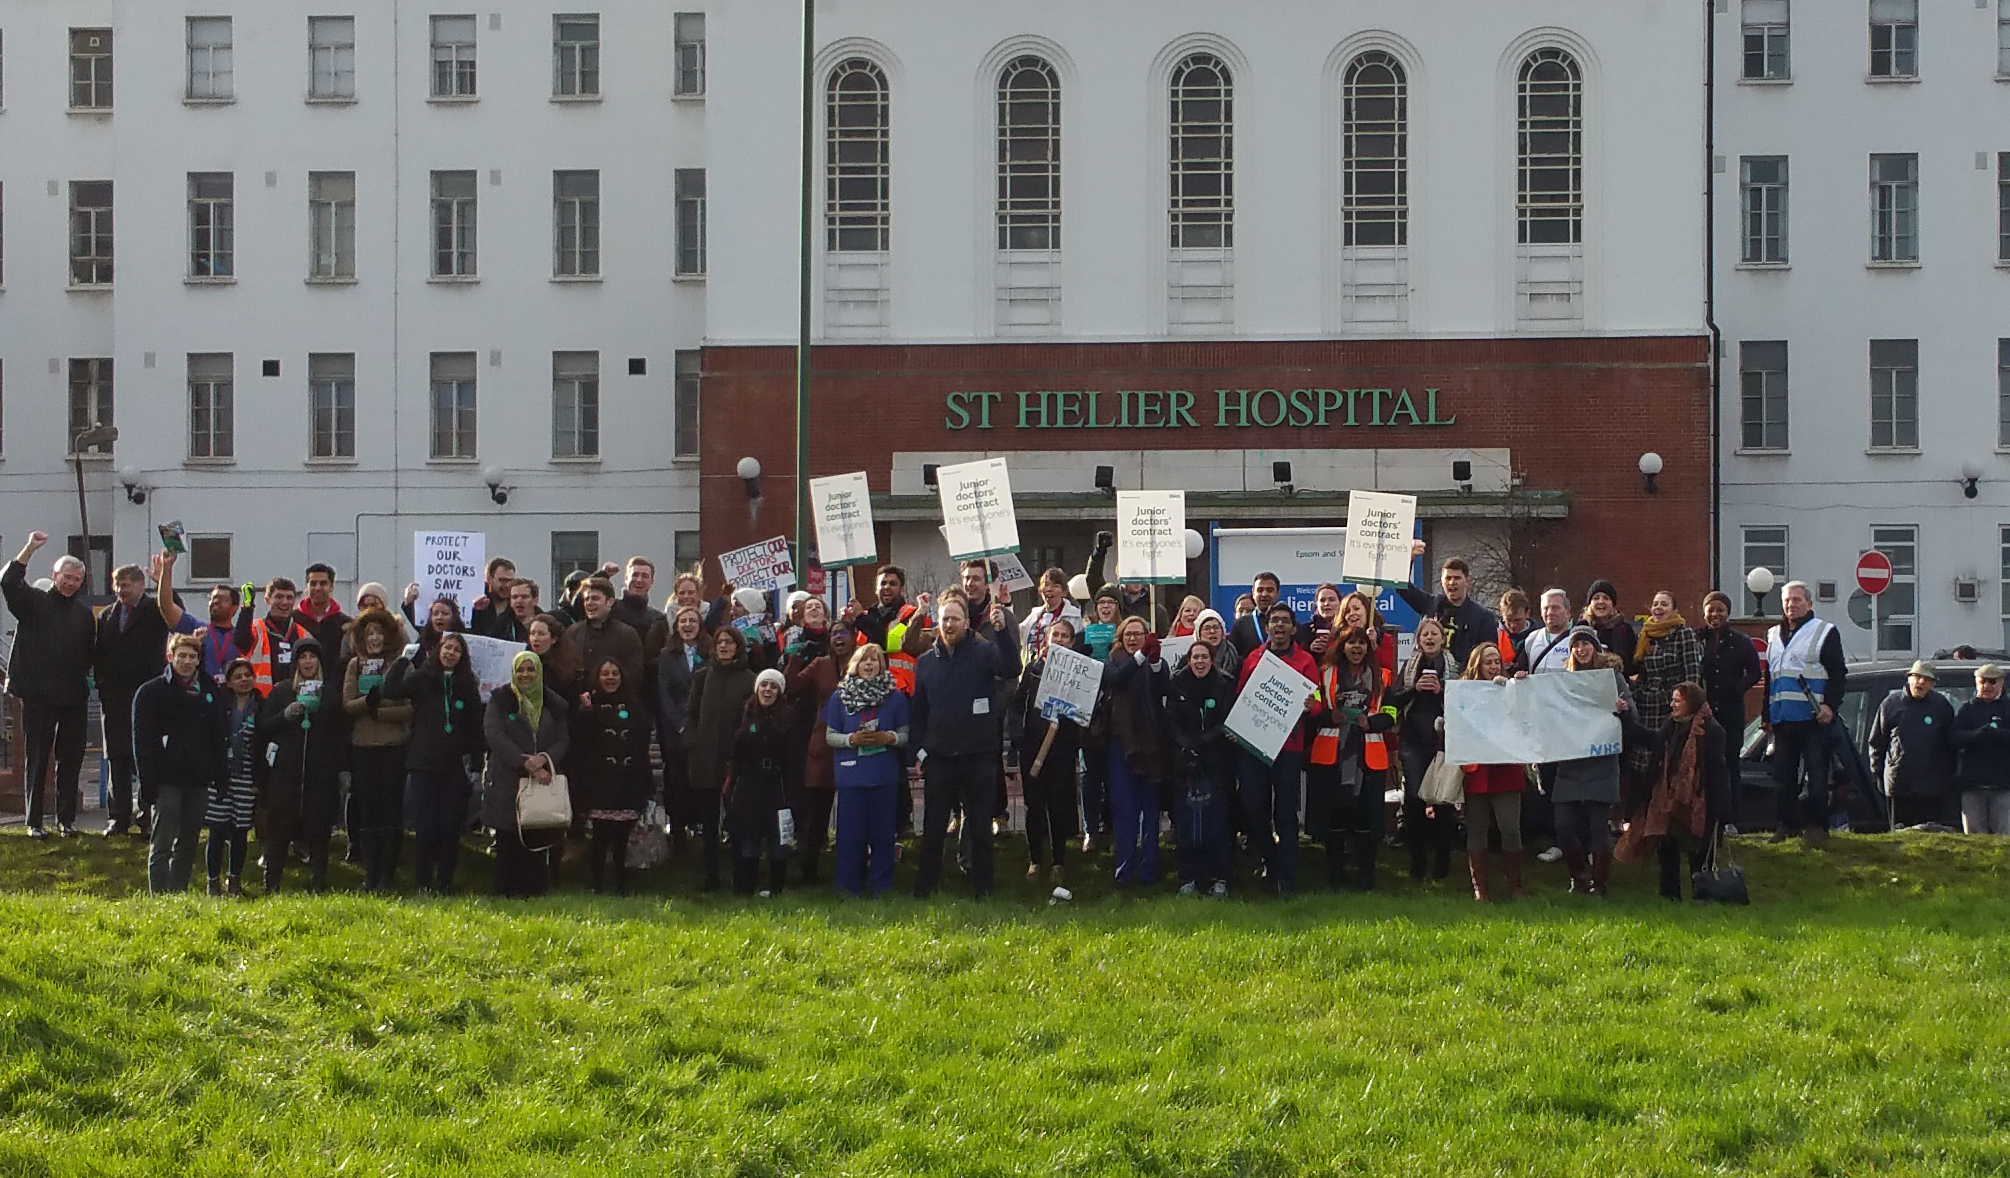 2016 01 12 Junior Doctors Protest - St Helier